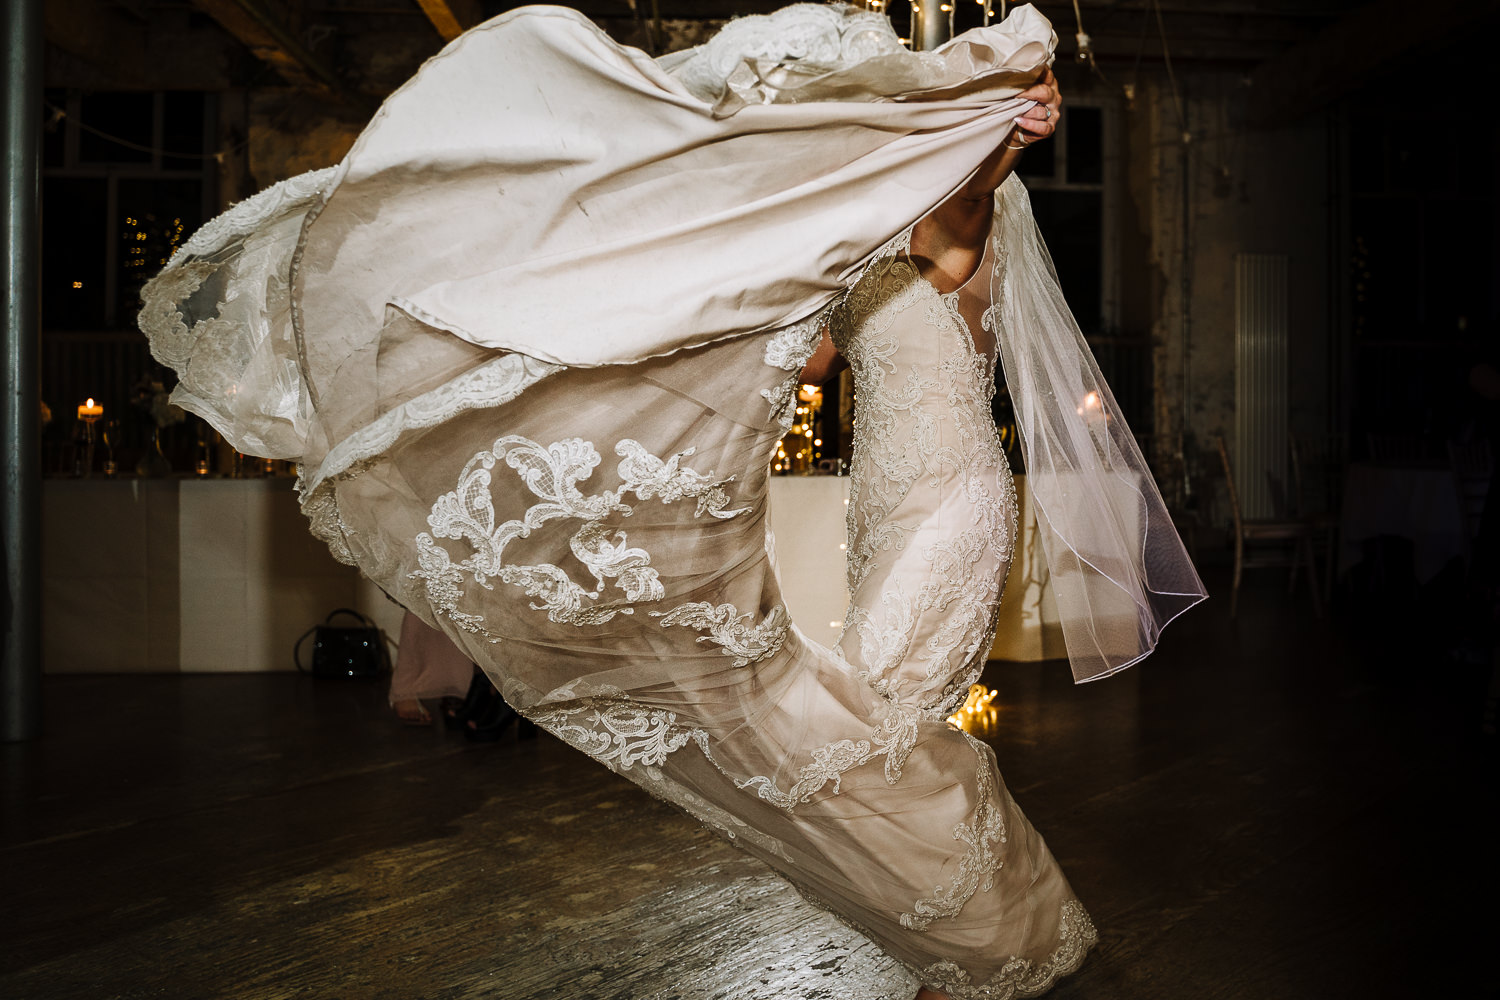 Bride dancing with her dress